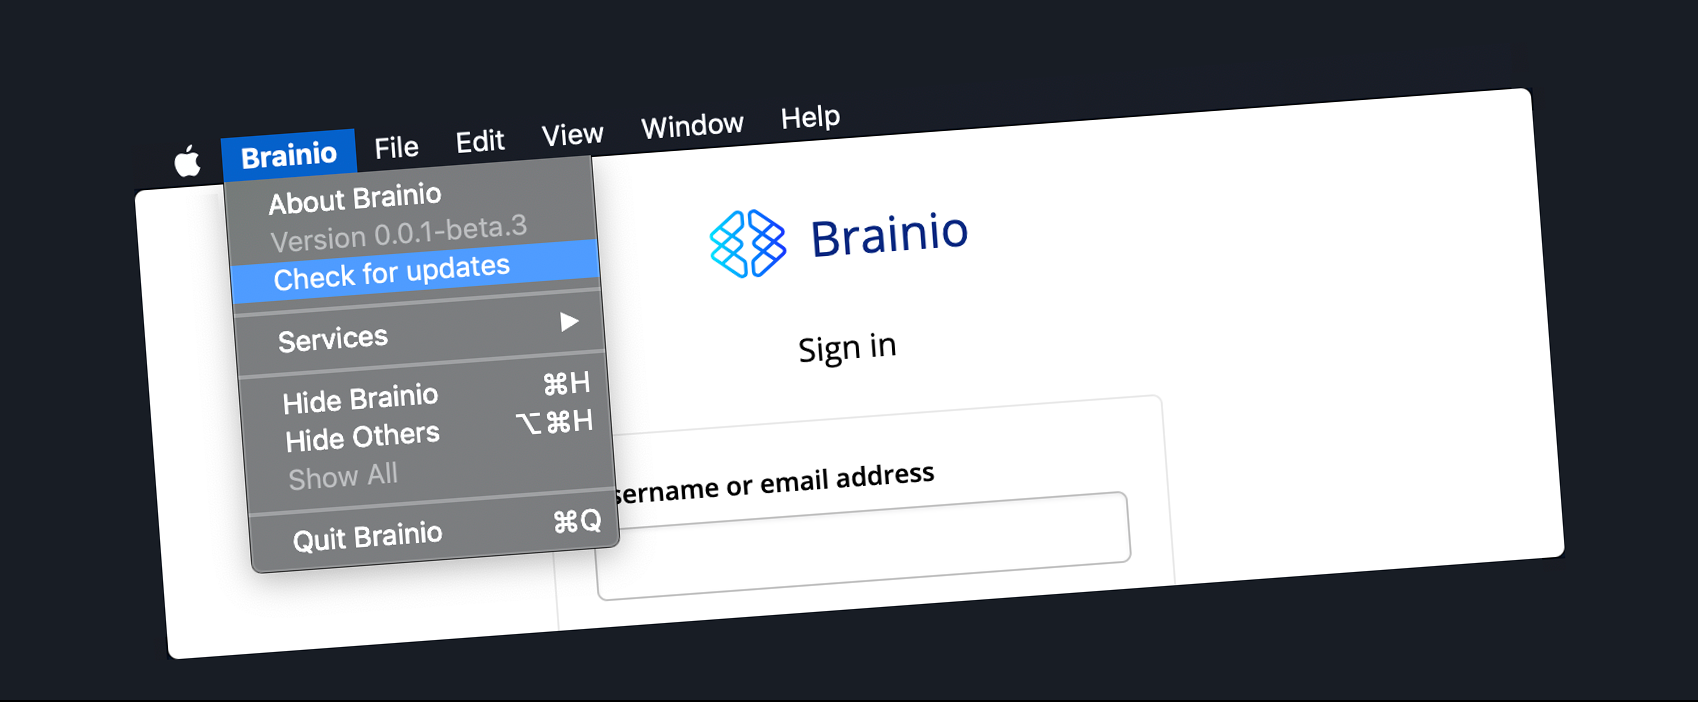 Brainio - Automatic updates in Electron (macOS and S3)